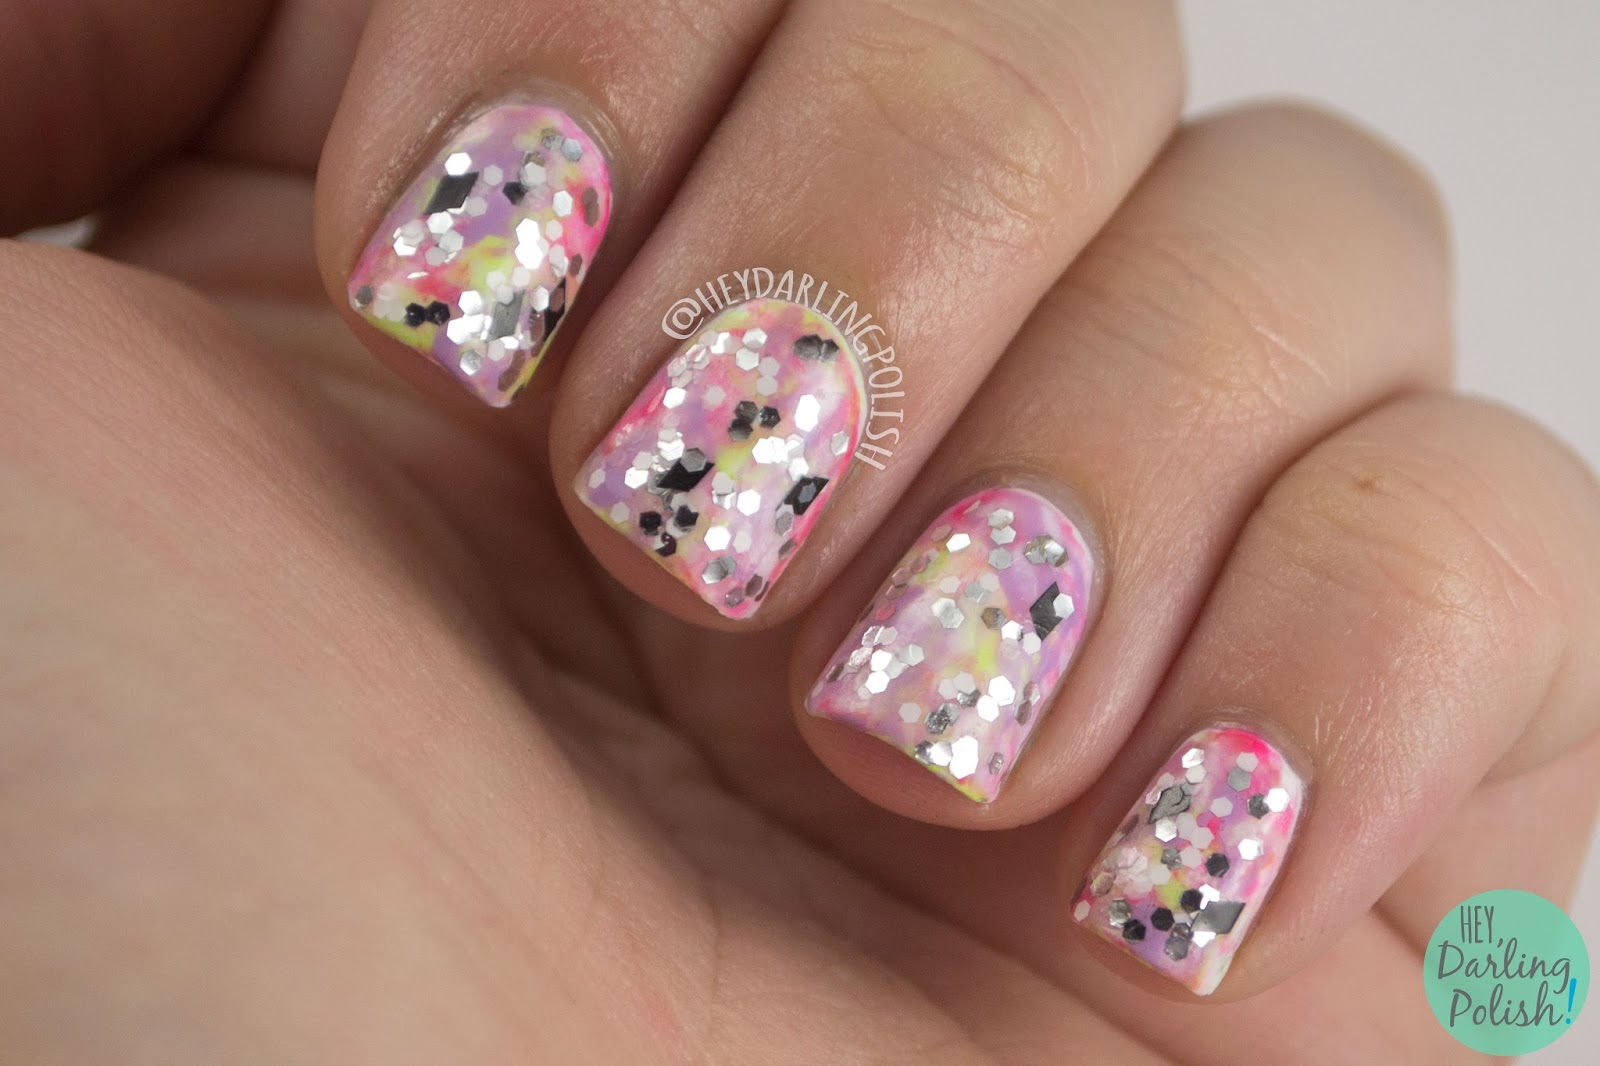 nails, nail art, nail polish, tri polish challenge, glitter, pink, purple, green, hey darling polish